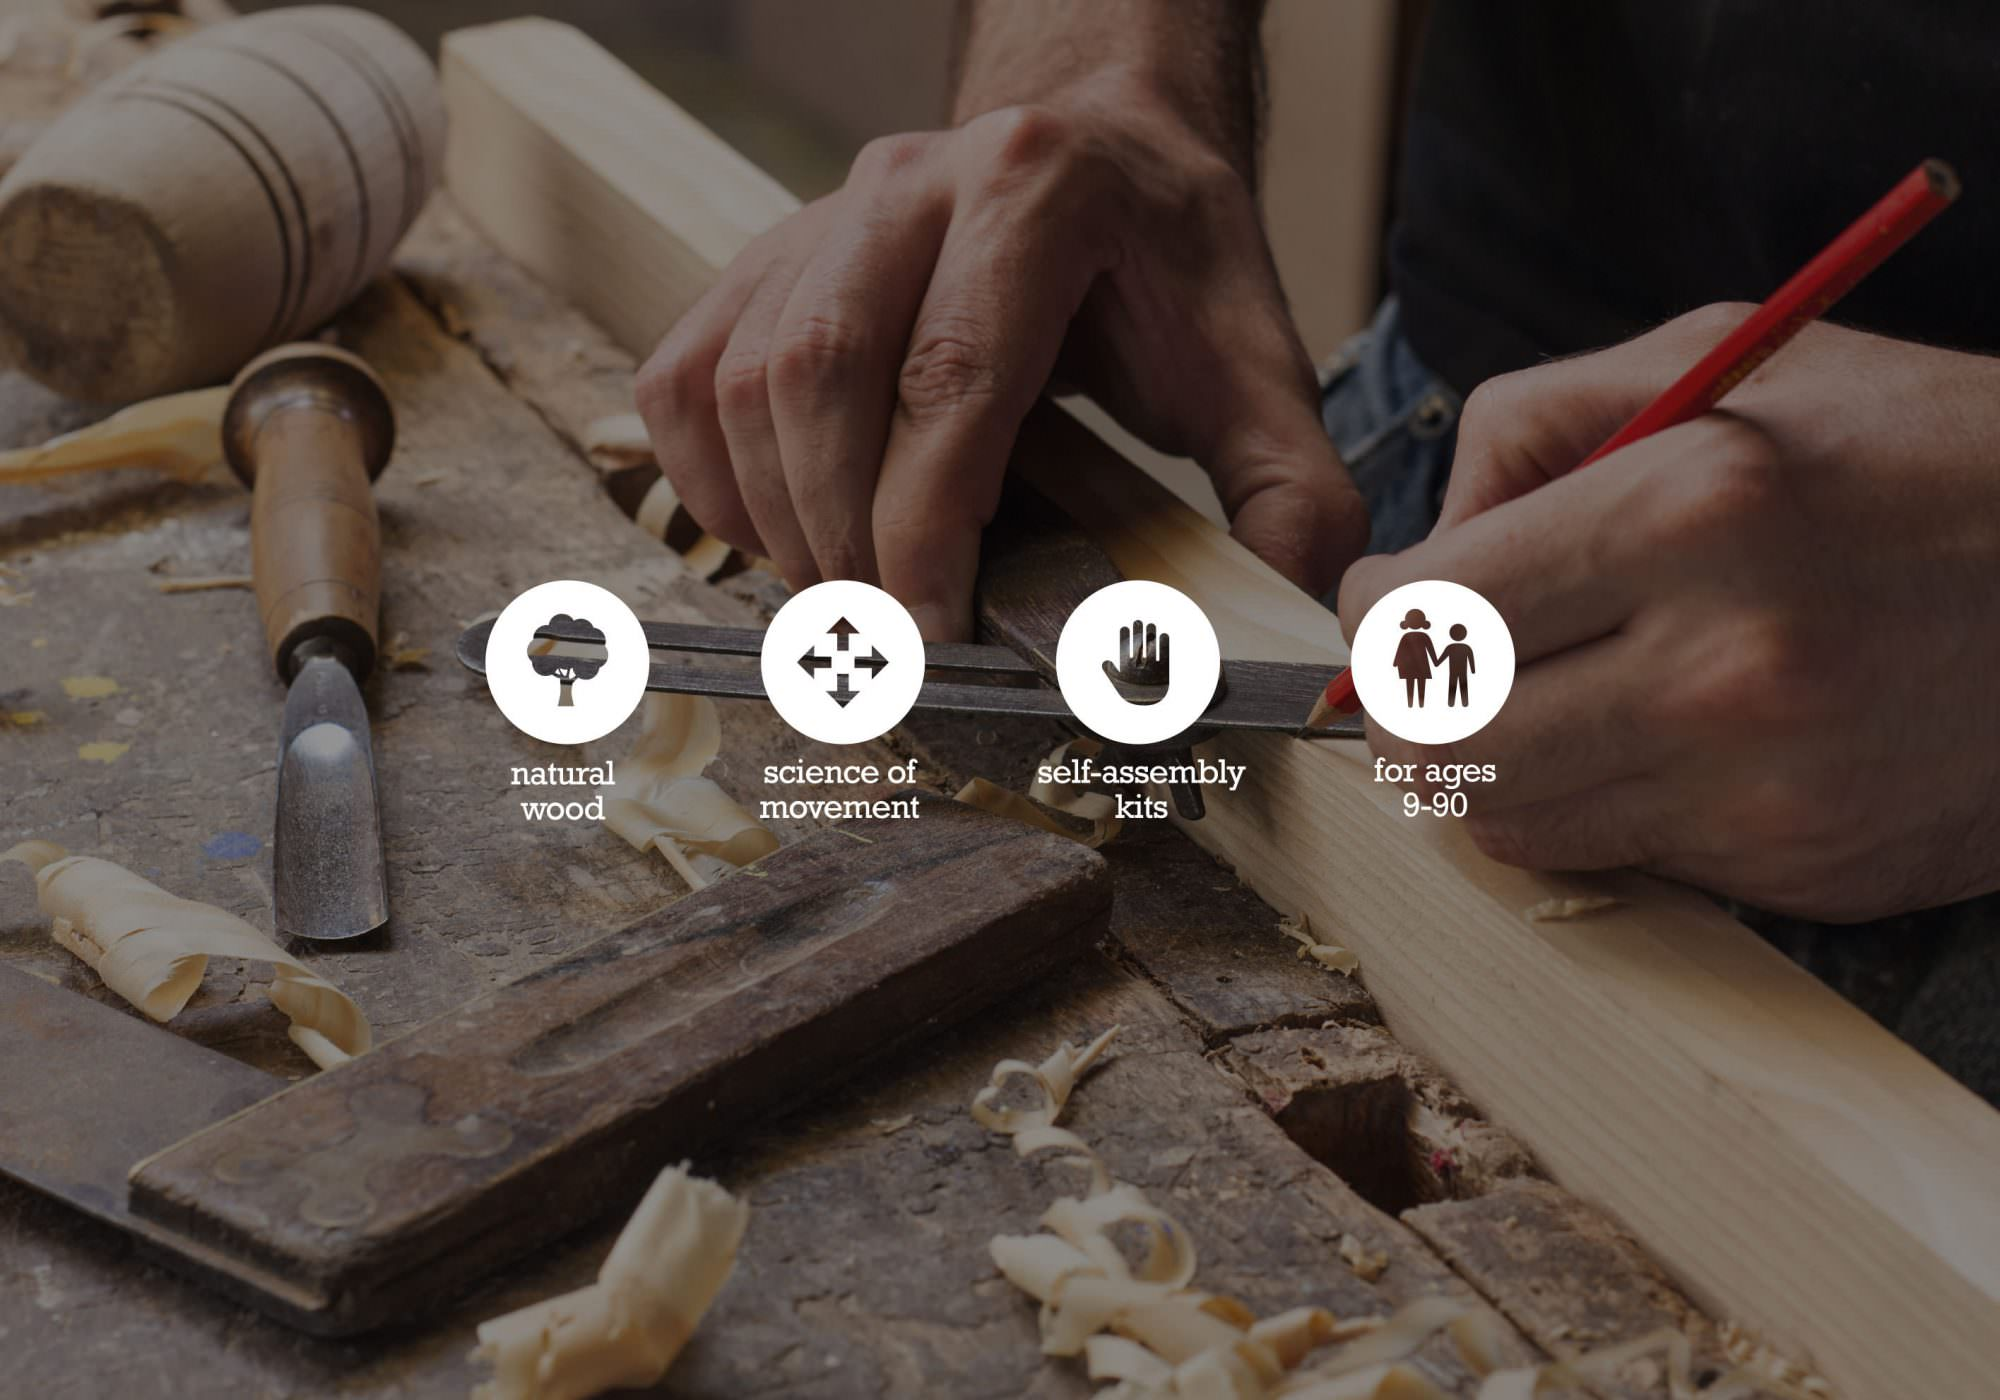 Timberkits - Packaging, Website Design & Stationery In Shropshire